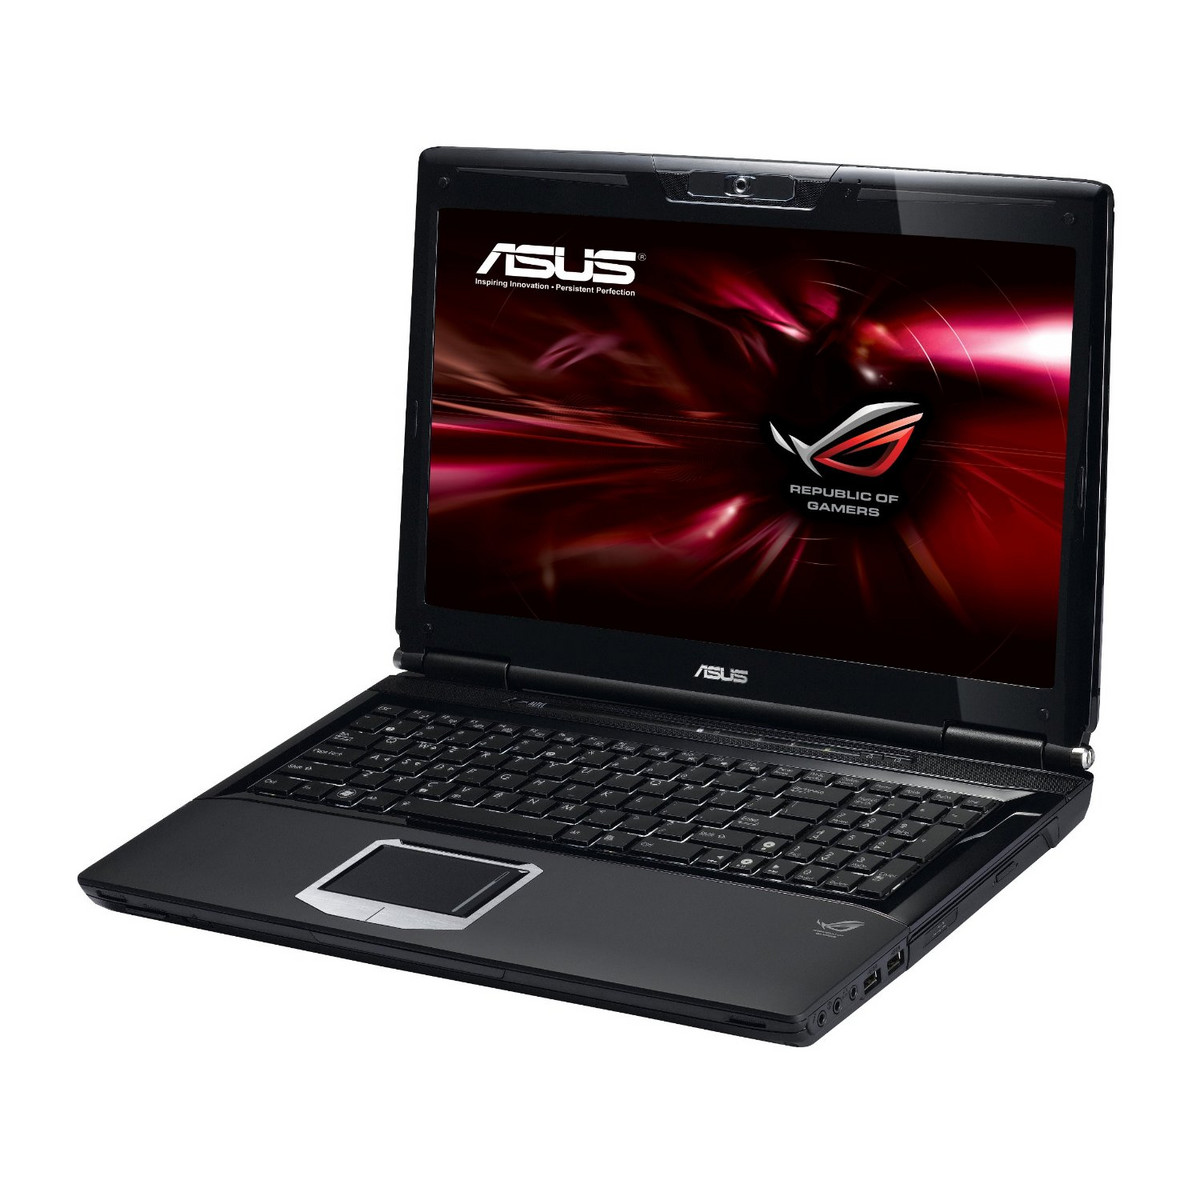 ASUS G51JX DRIVER FOR WINDOWS 10